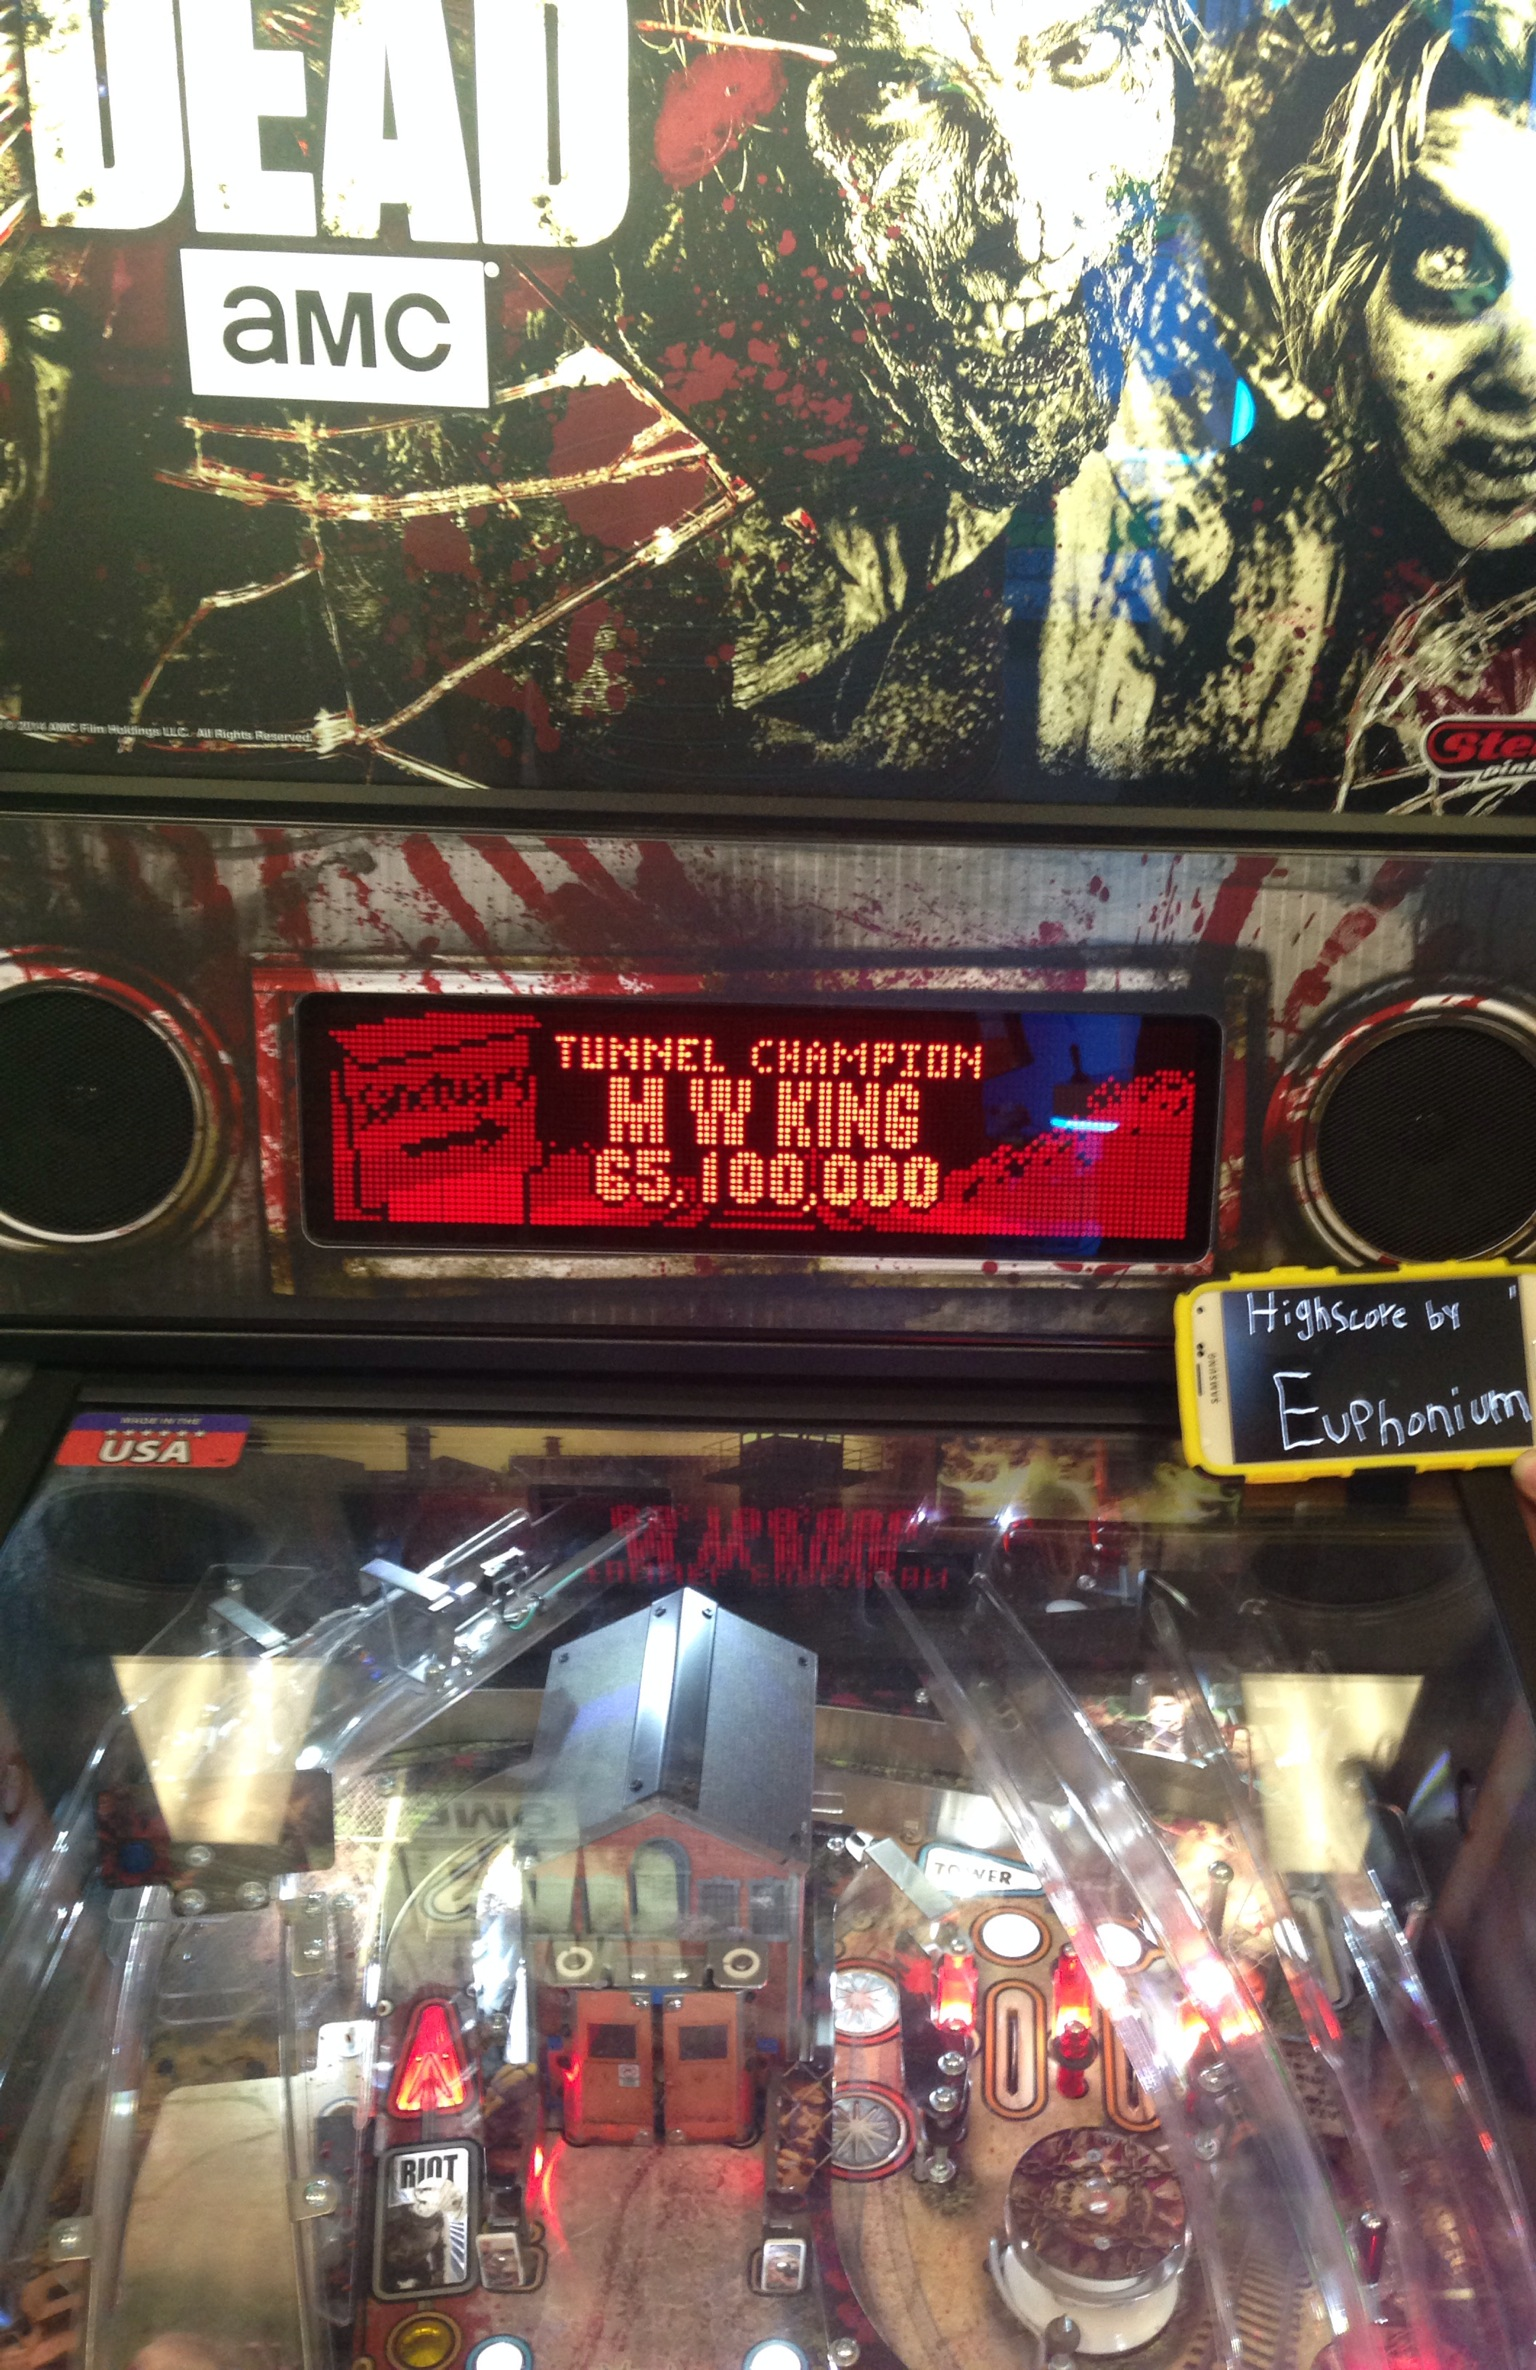 The Walking Dead: Tunnel Champion 65,100,000 points